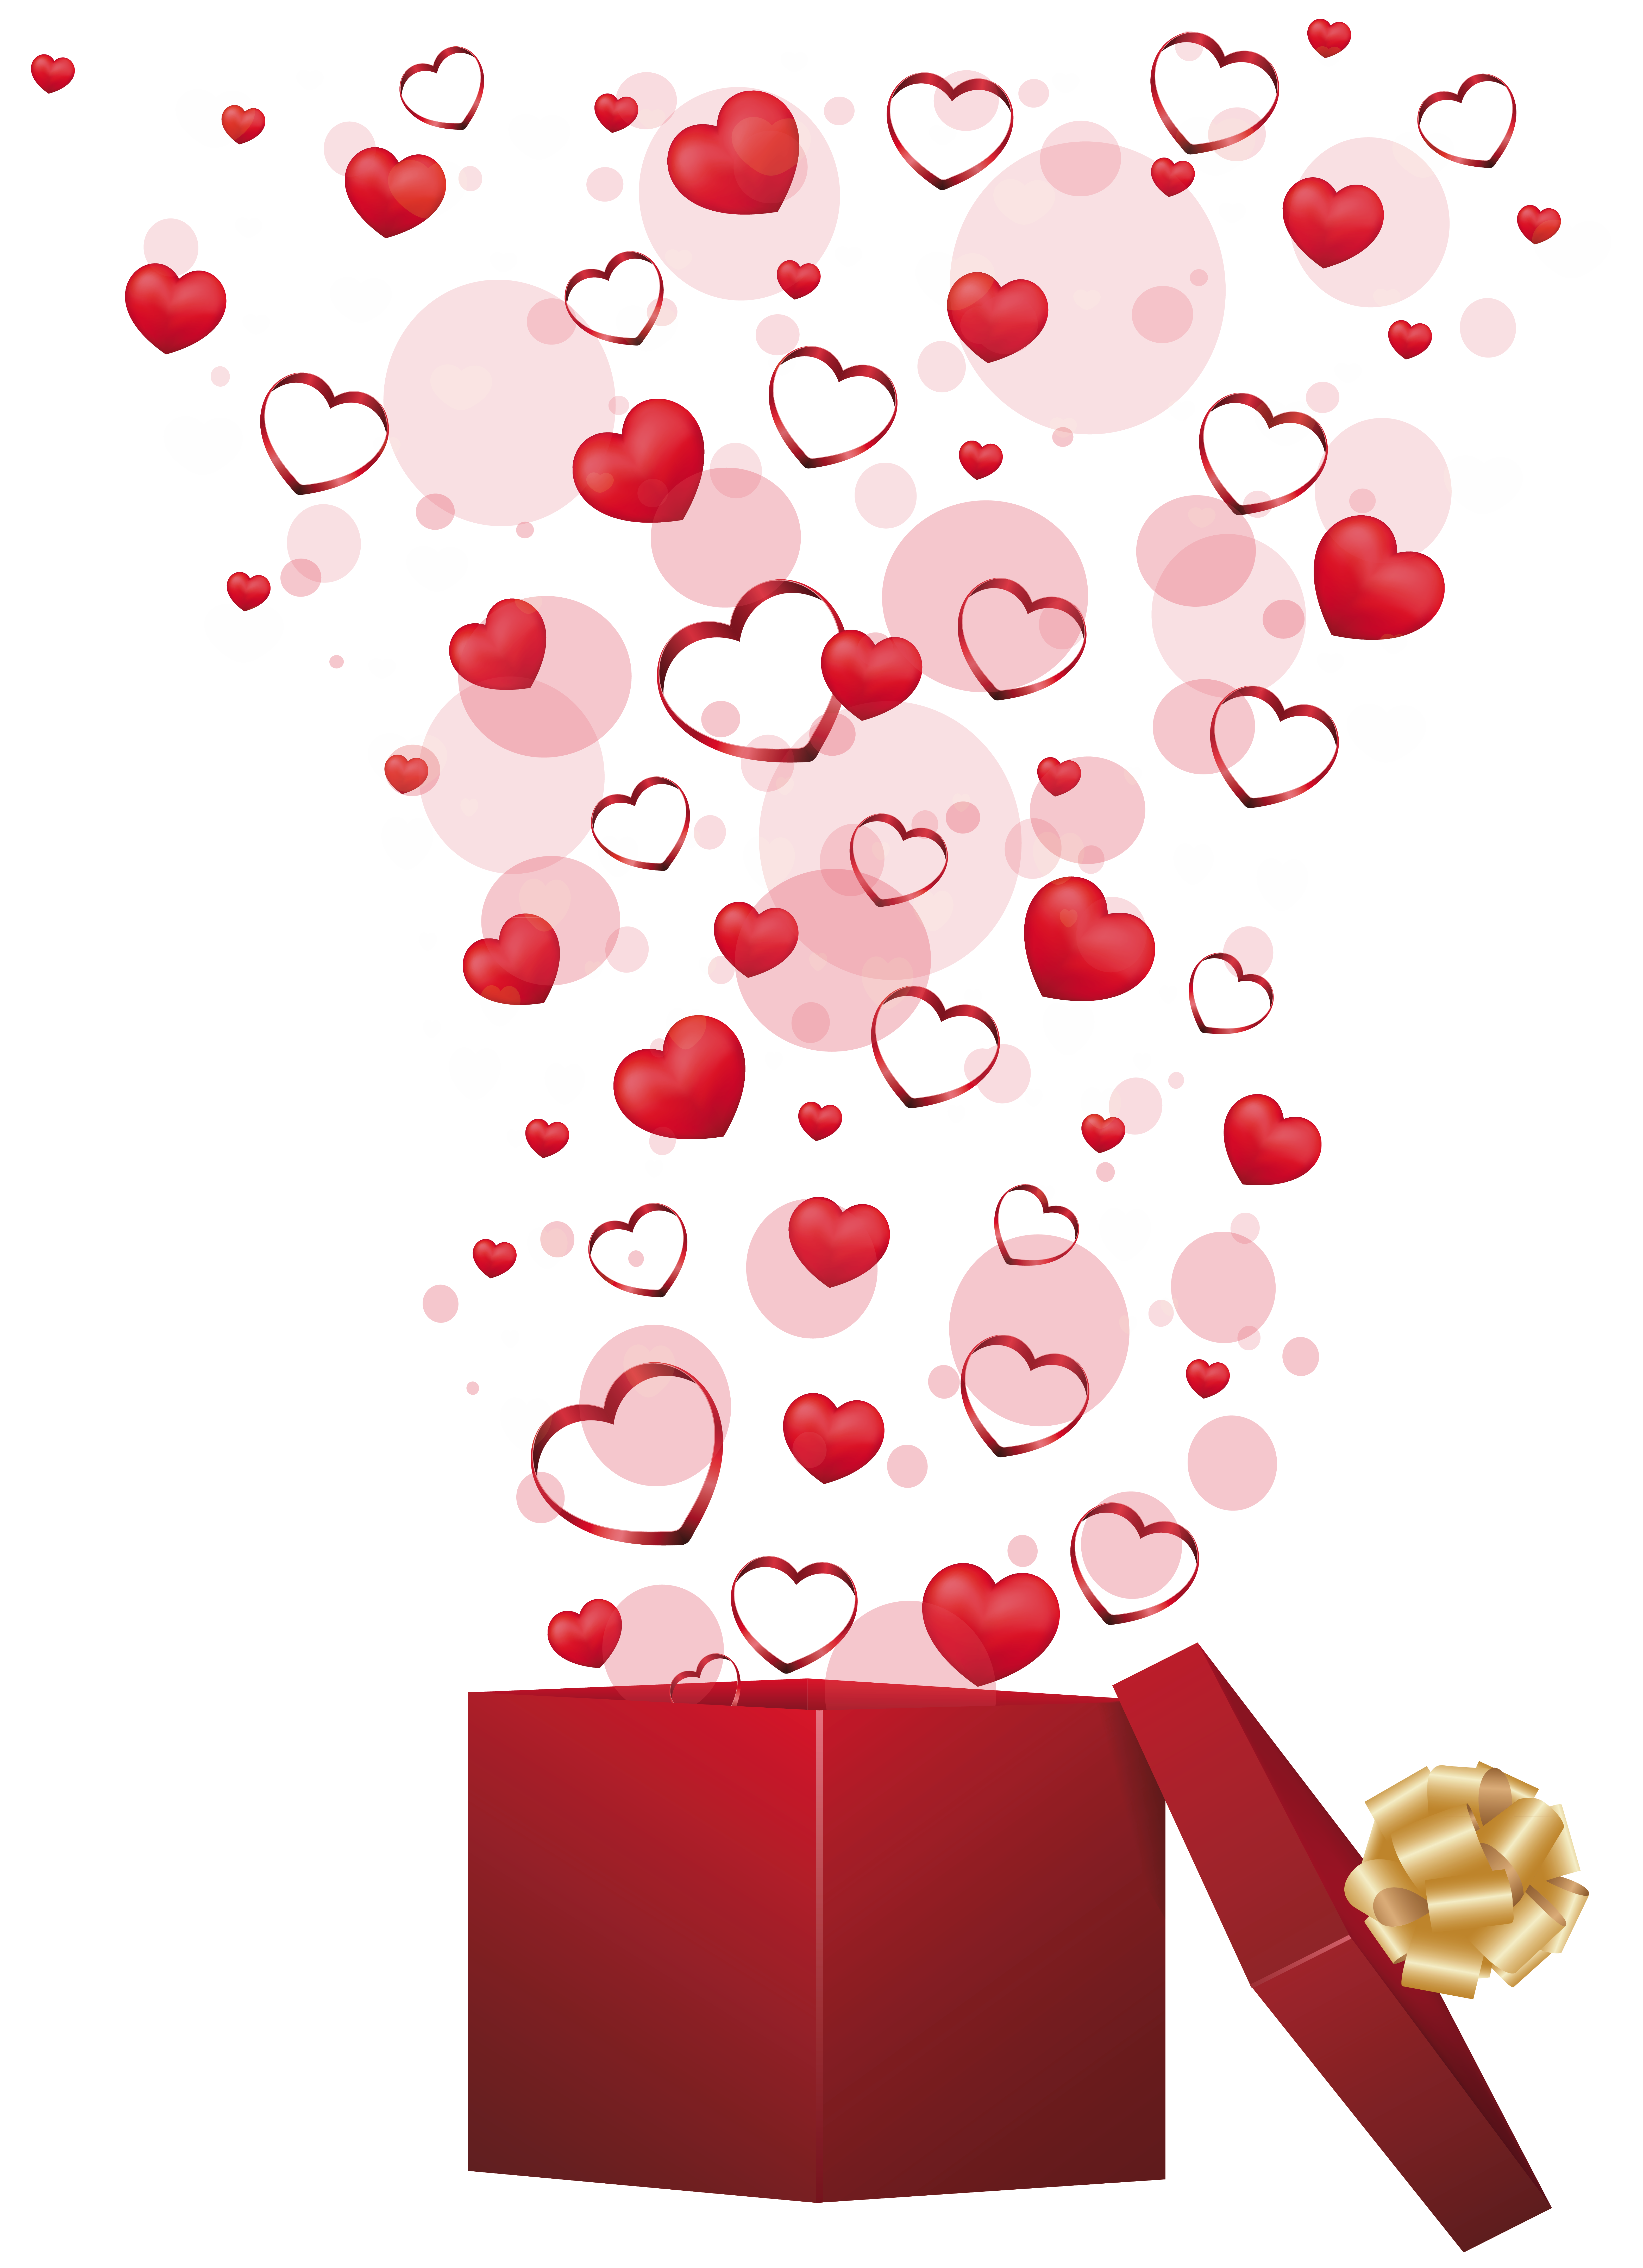 Red gift with hearts. Confetti clipart valentines